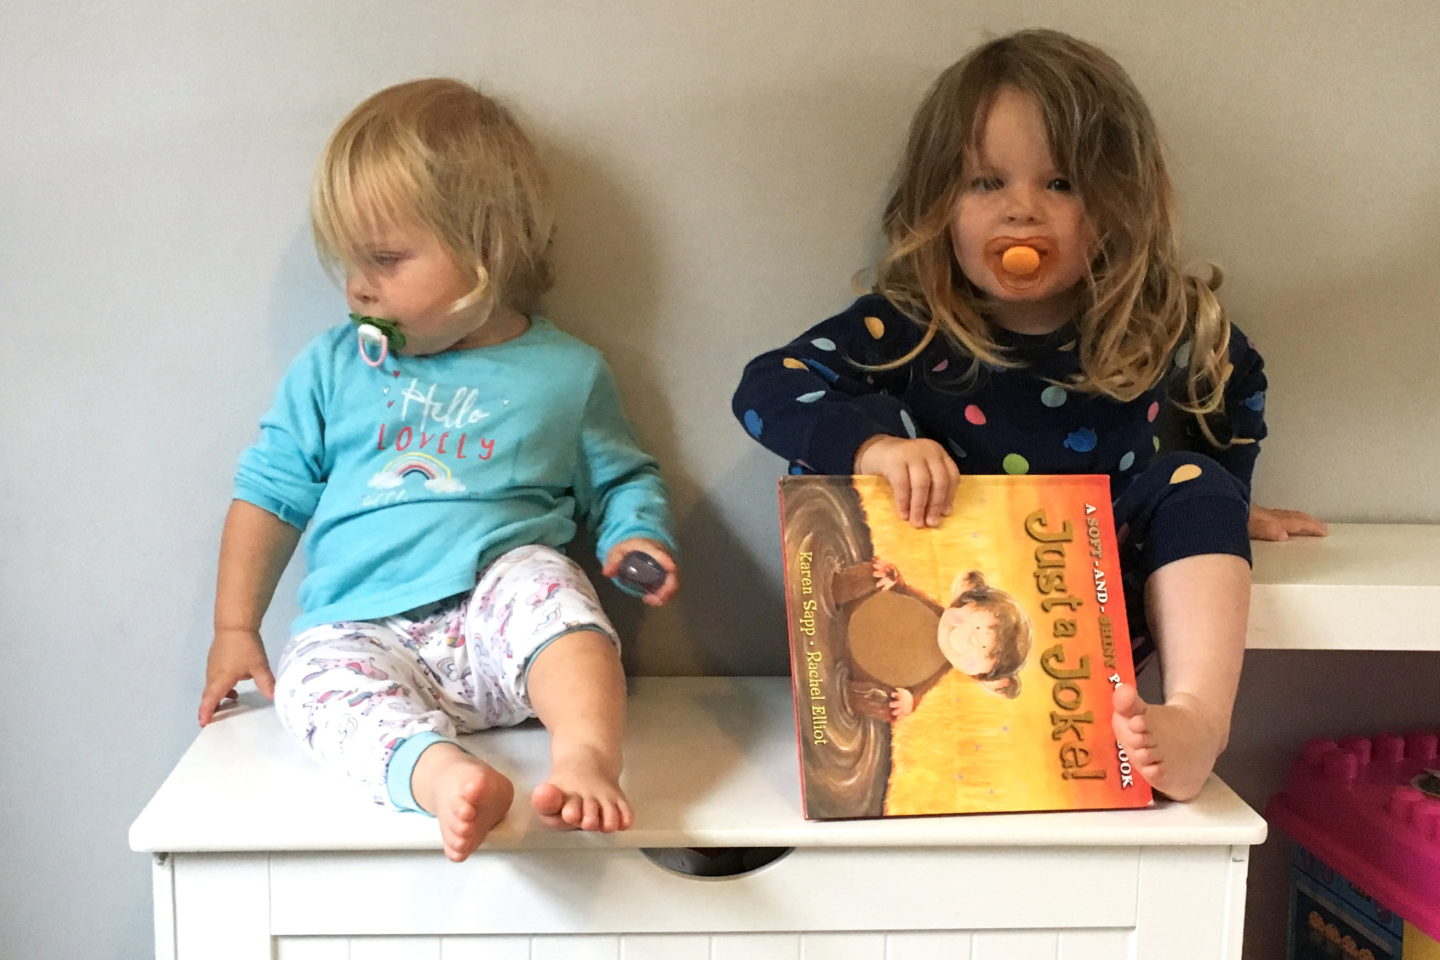 two sisters sitting on a toy box in their pyjamas